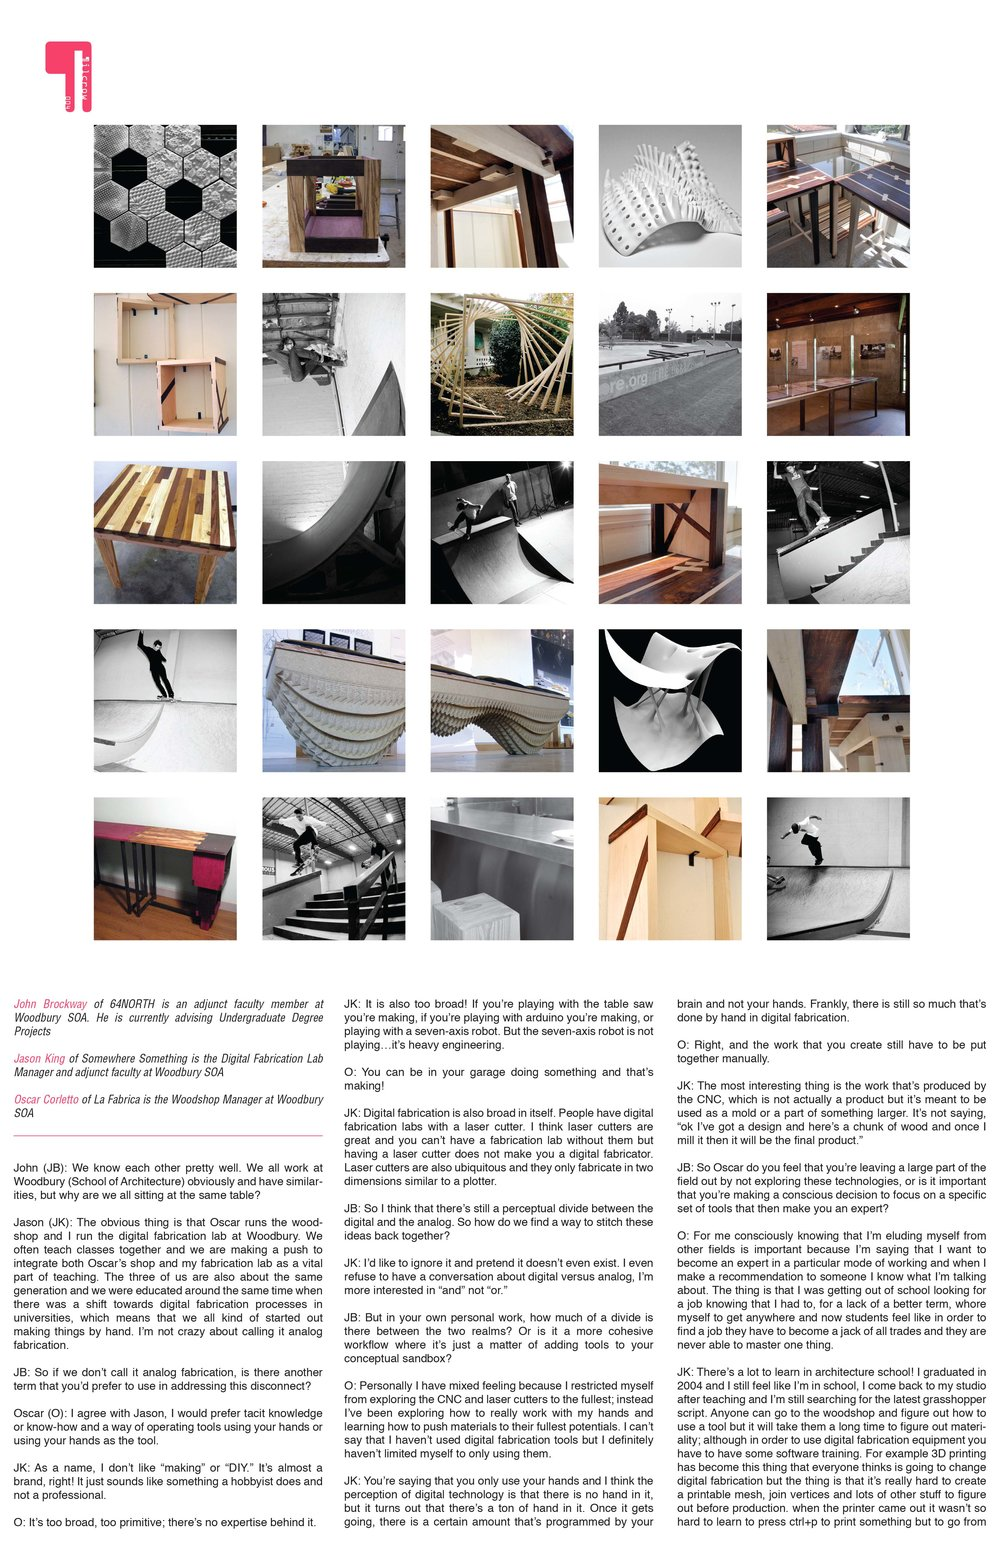 004-pilcrow-Mostly-Fabricated_Page_1.jpg